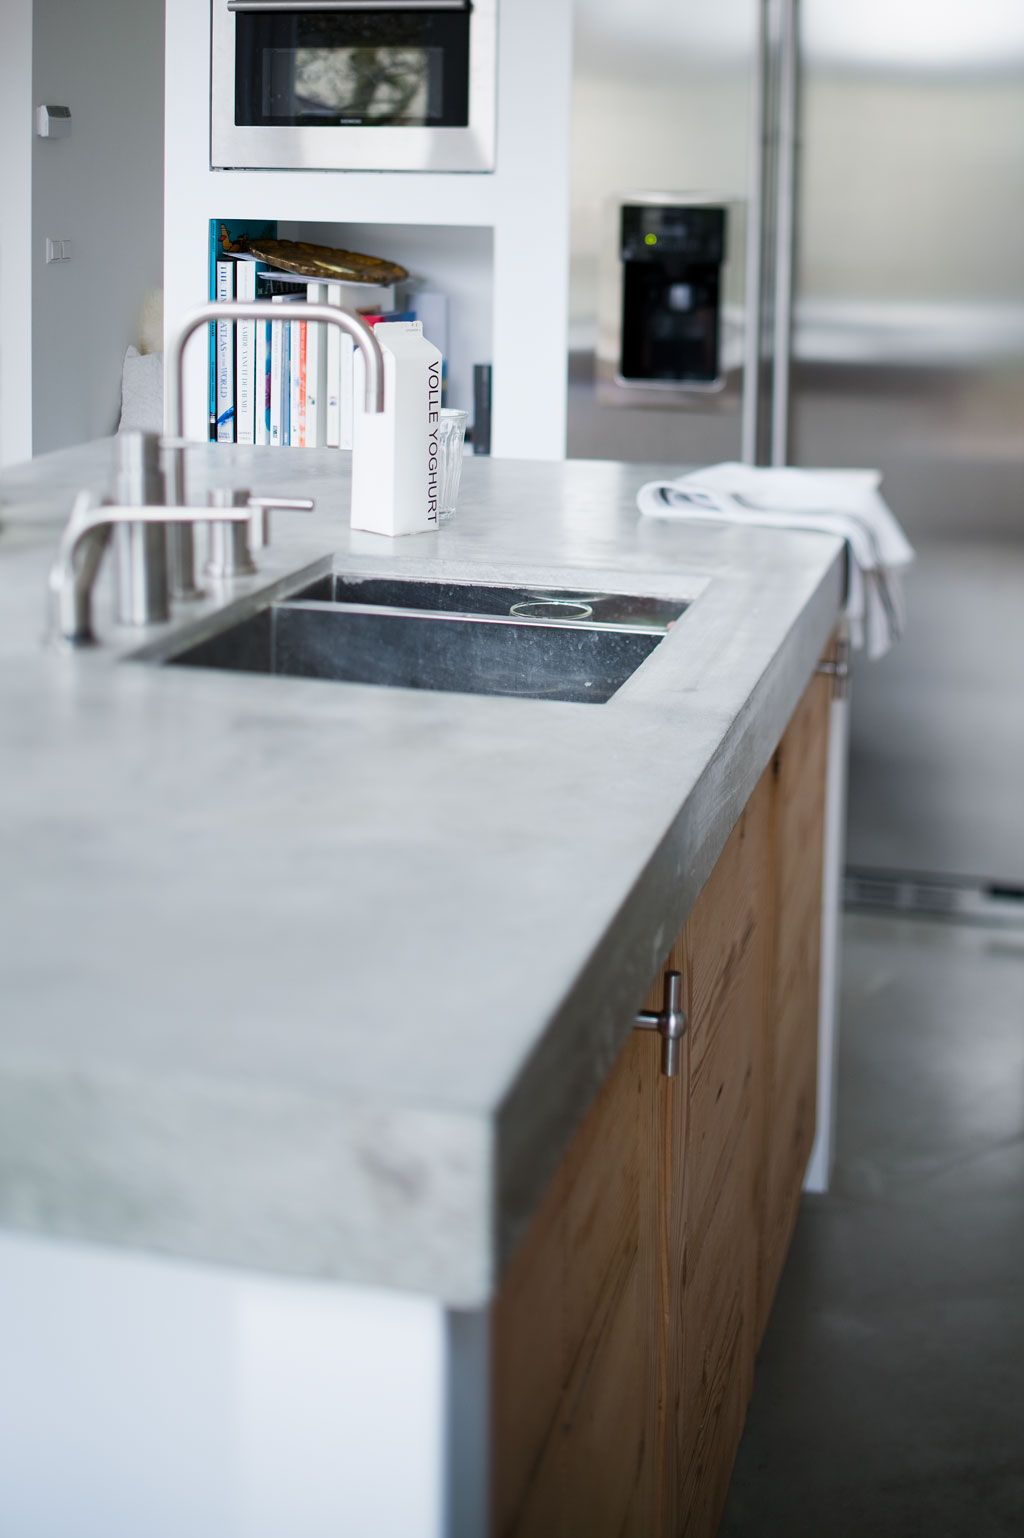 10 Most Popular Kitchen Countertops With Images Popular Kitchen Countertops Popular Kitchens Concrete Kitchen